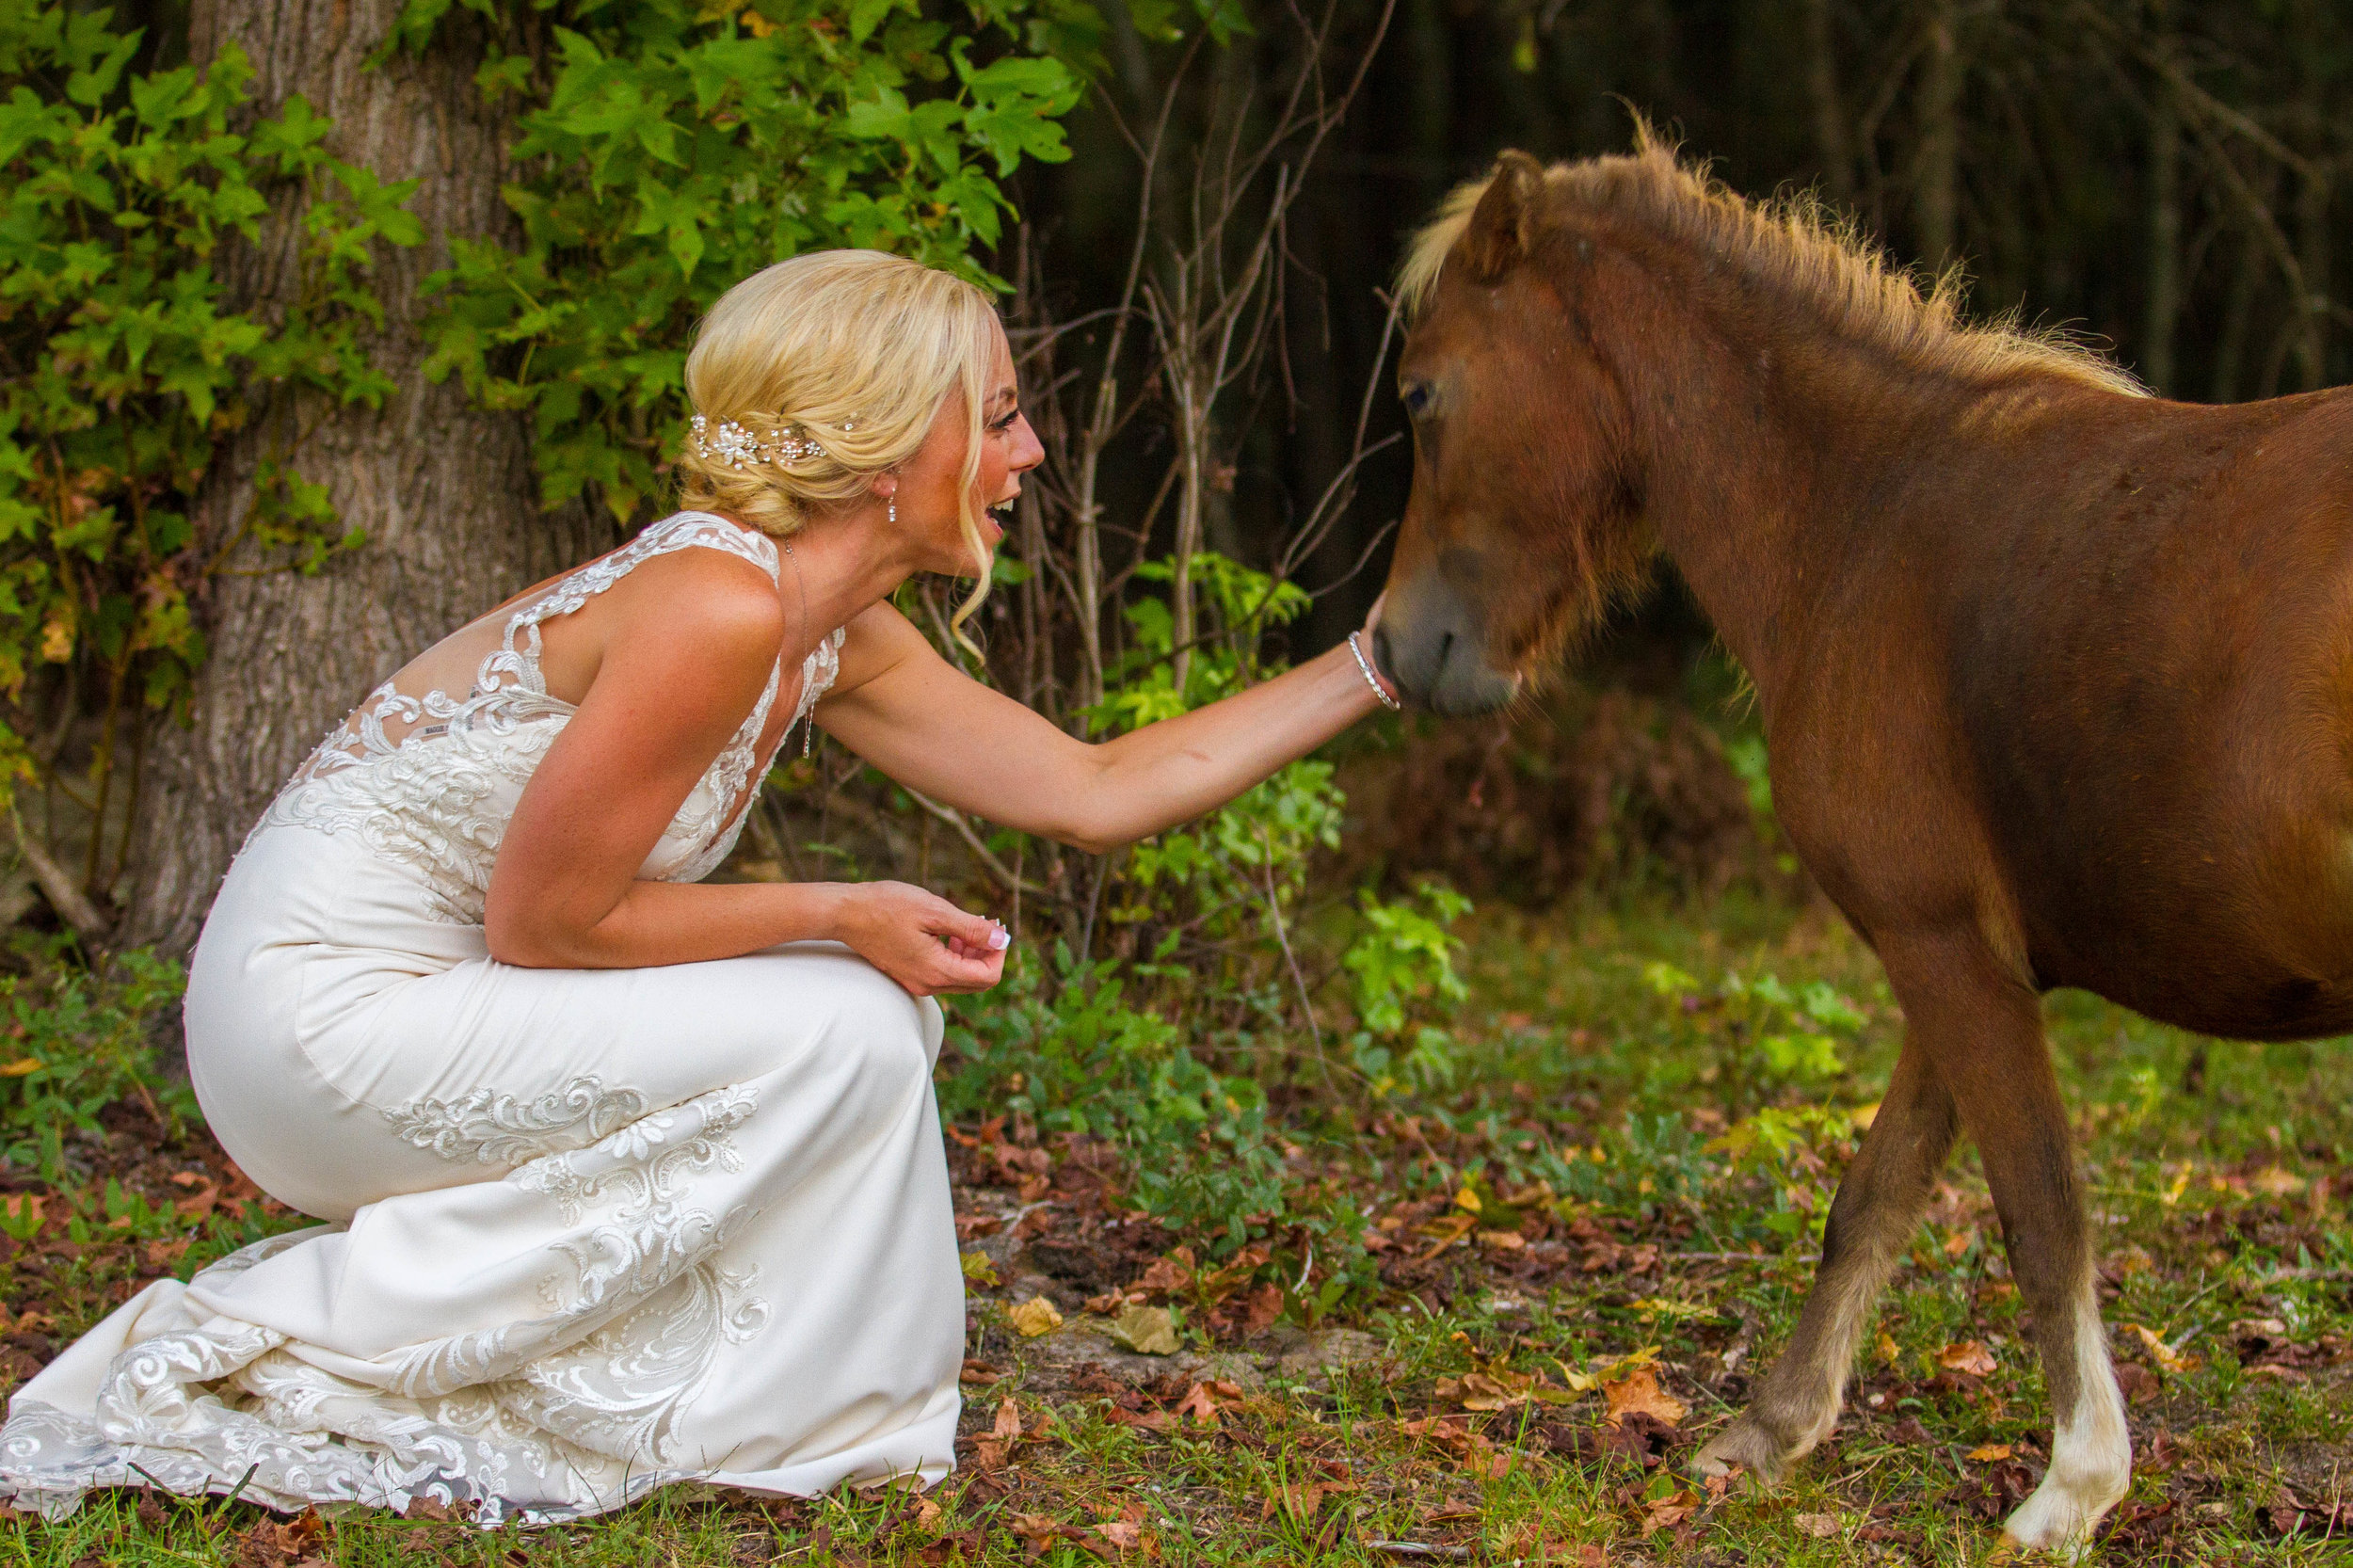 KAYLIE'S INTIMATE, FAMILY-ORIENTED WEDDING IN ELLABELL